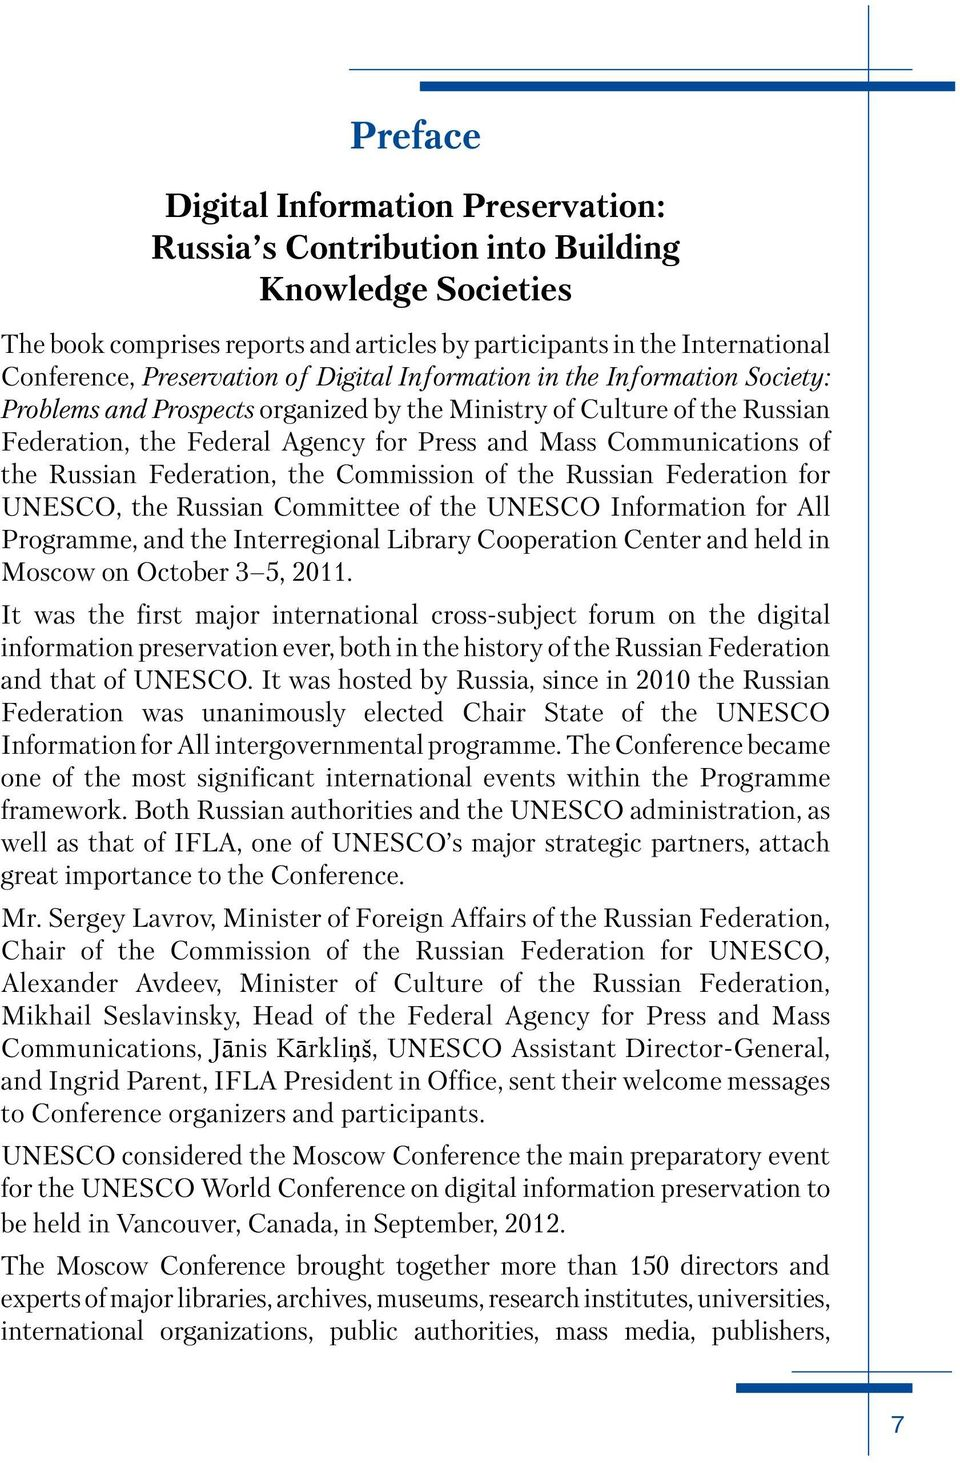 Russian Federation, the Commission of the Russian Federation for UNESCO, the Russian Committee of the UNESCO Information for All Programme, and the Interregional Library Cooperation Center and held